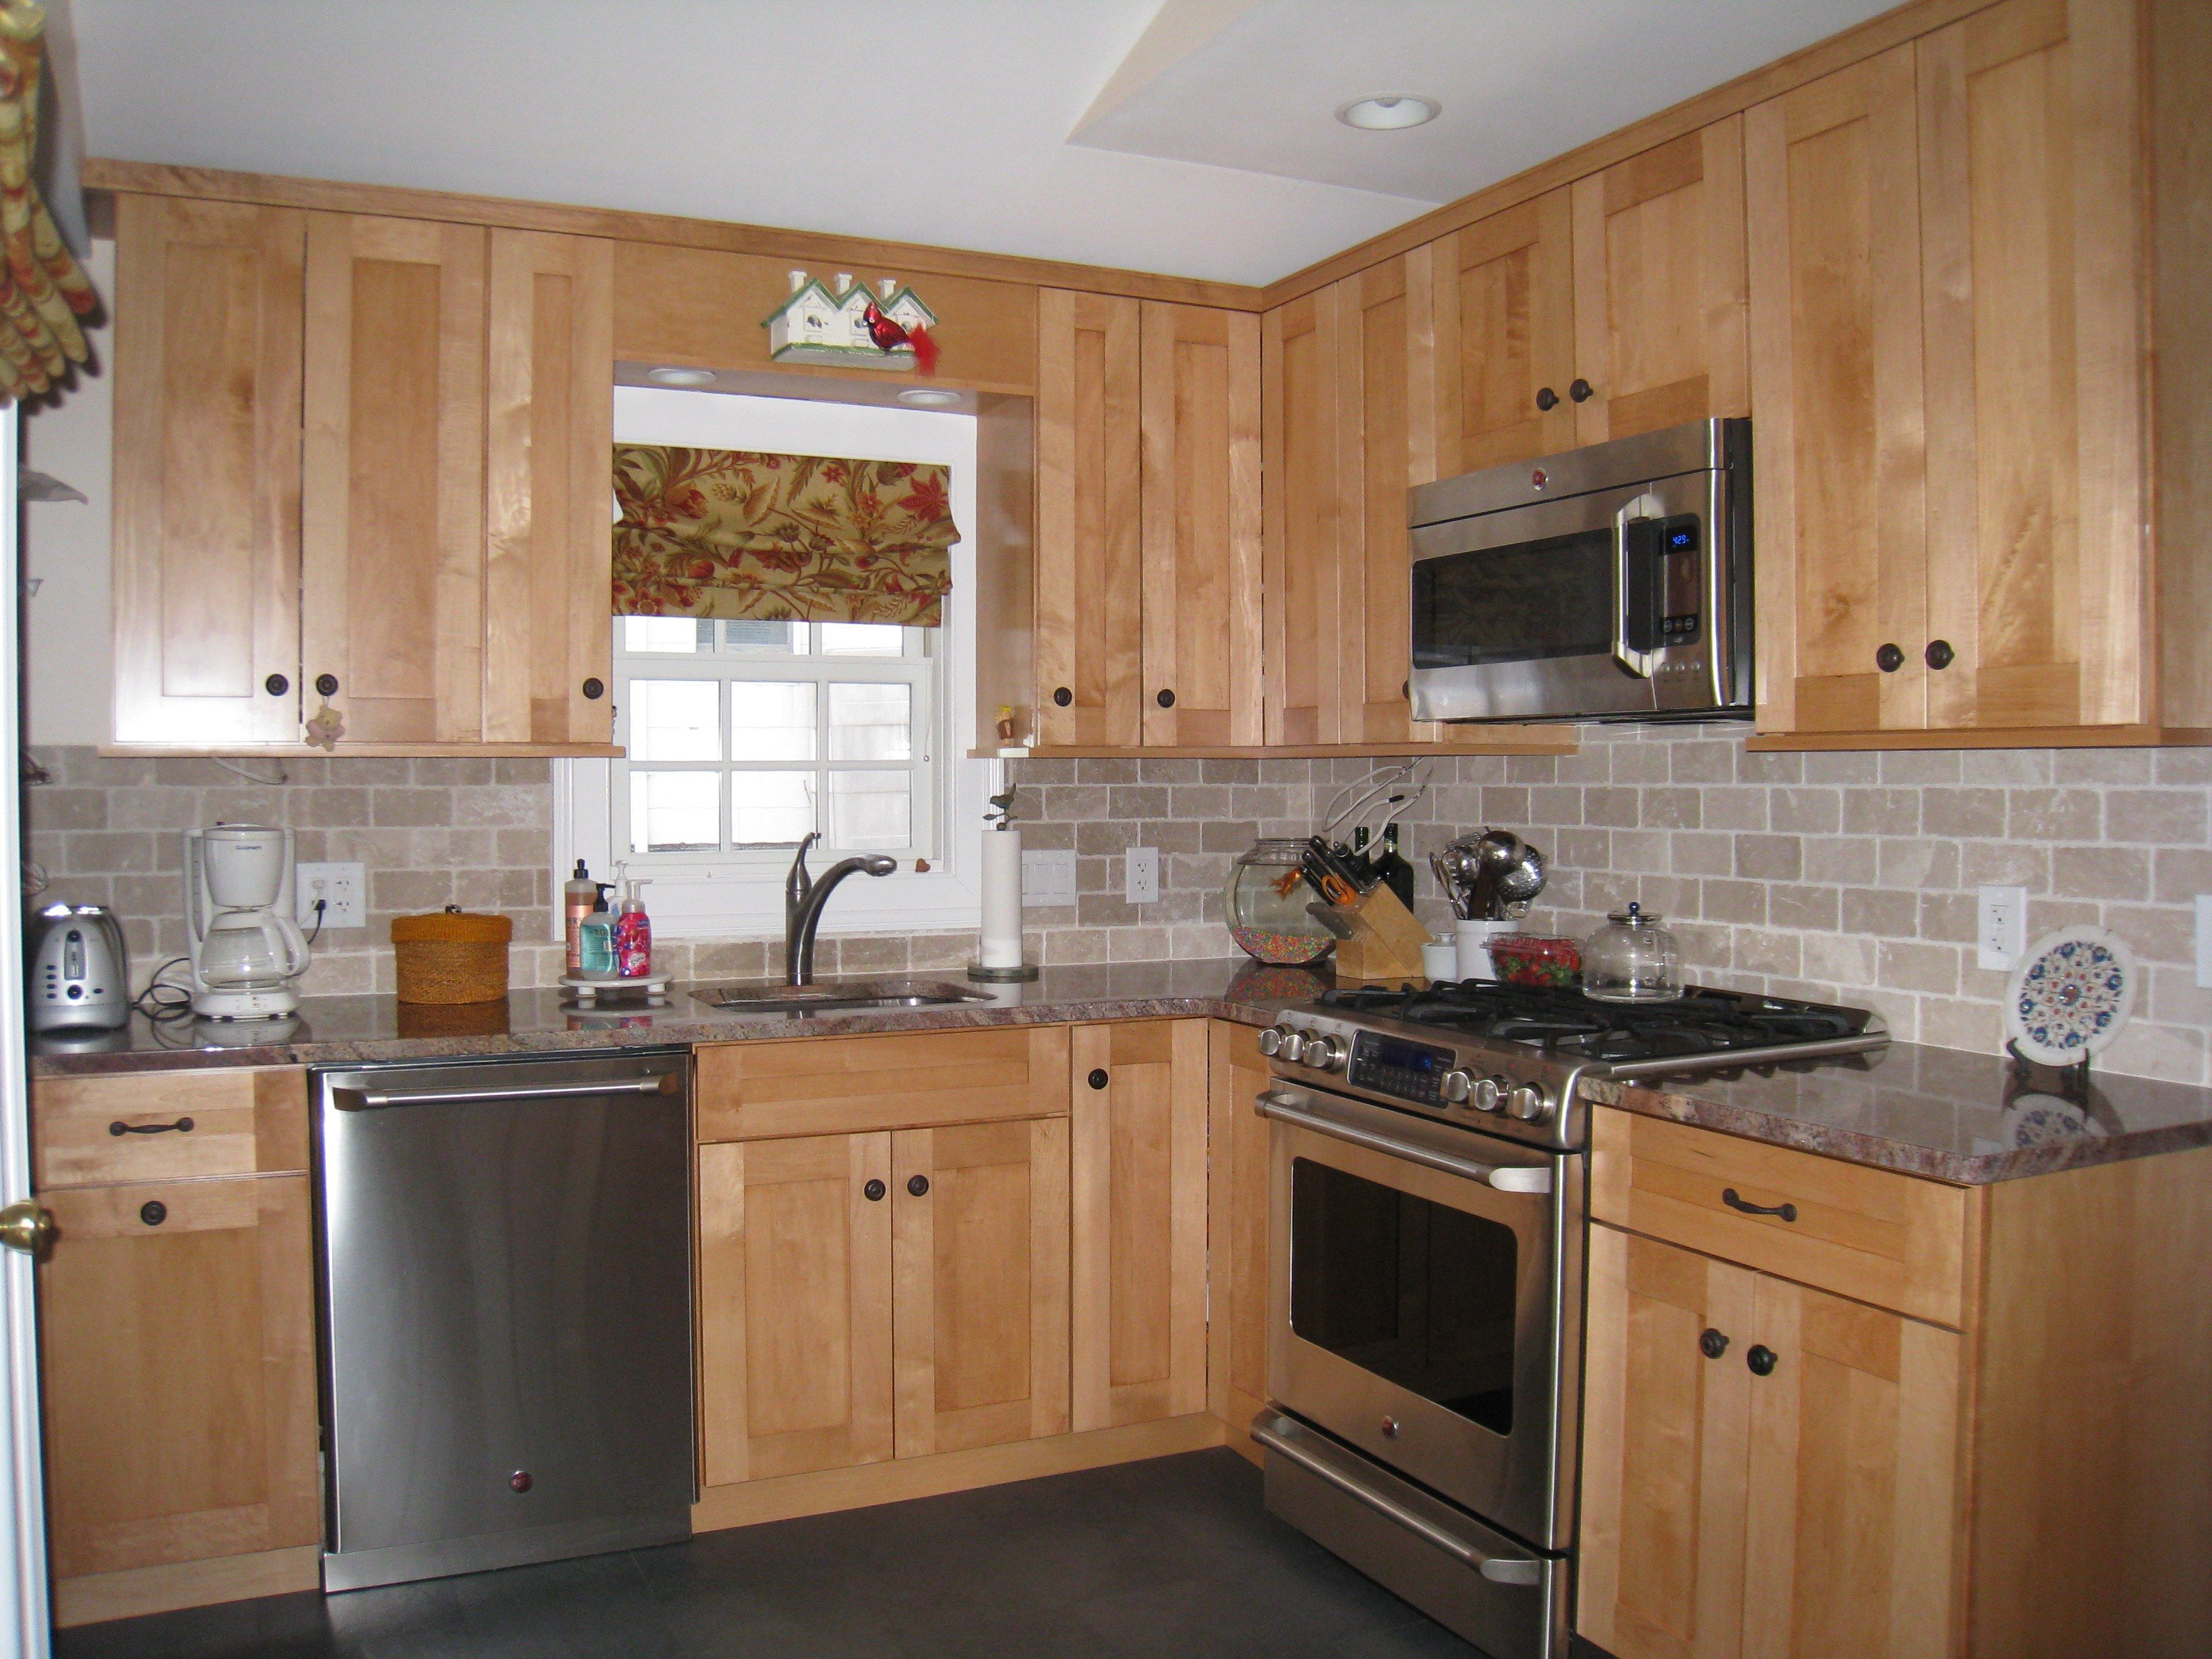 pictures of kitchen backsplashes | Shaker style maple ... on What Color Backsplash With Maple Cabinets  id=46354